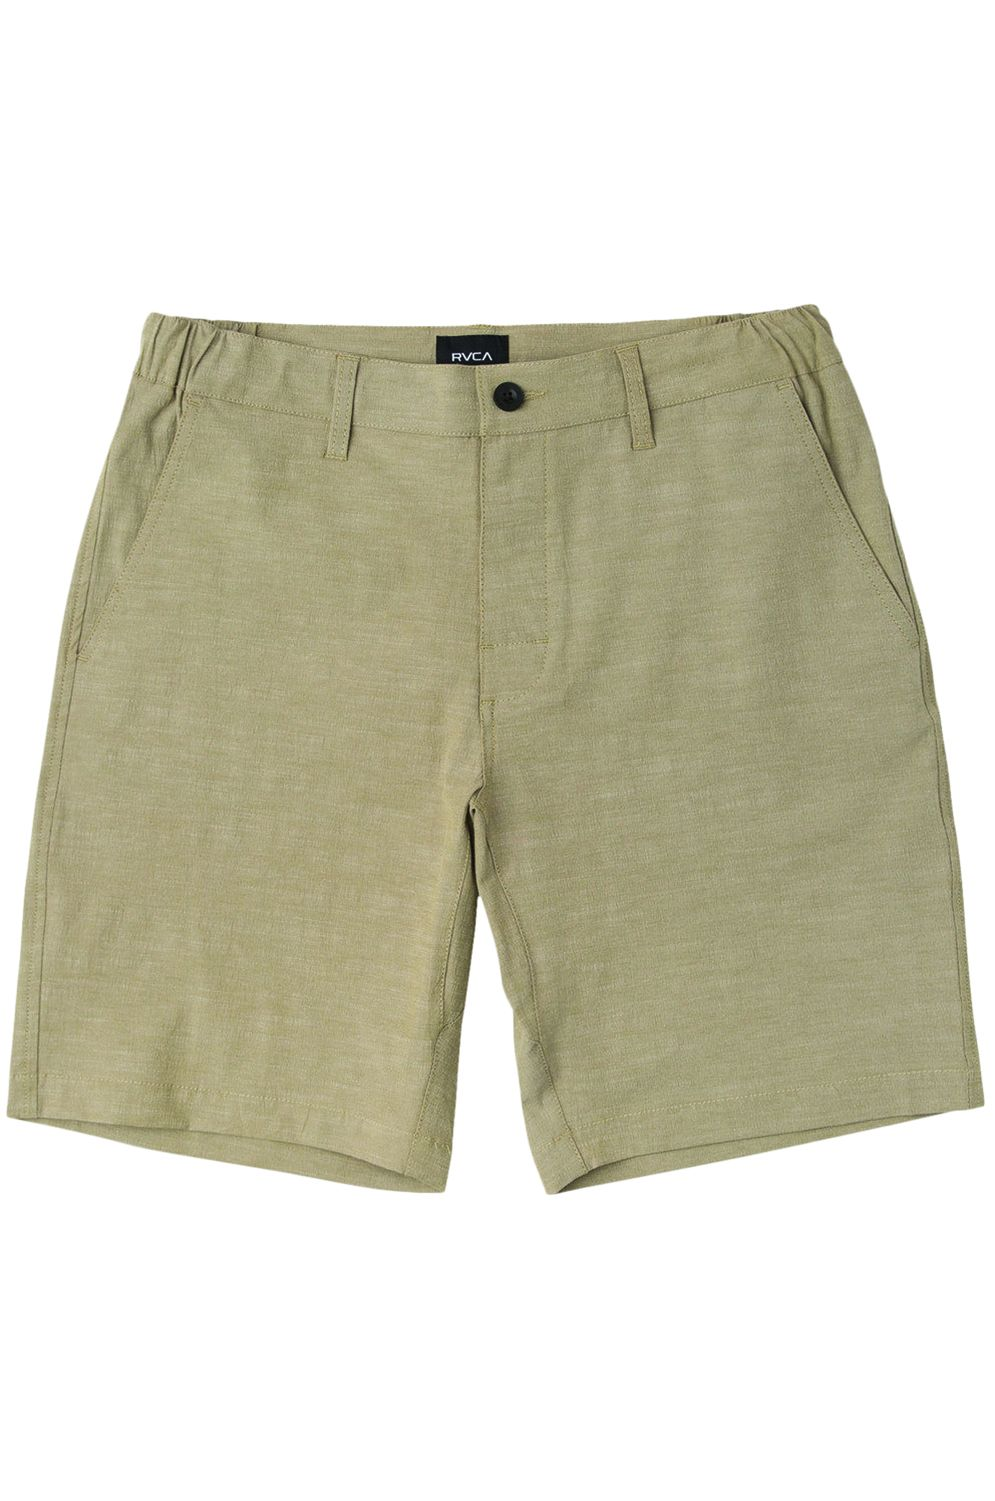 RVCA HydroWalkShorts ALL TIME COASTAL SOL ALL TIME COLLECTION Khaki